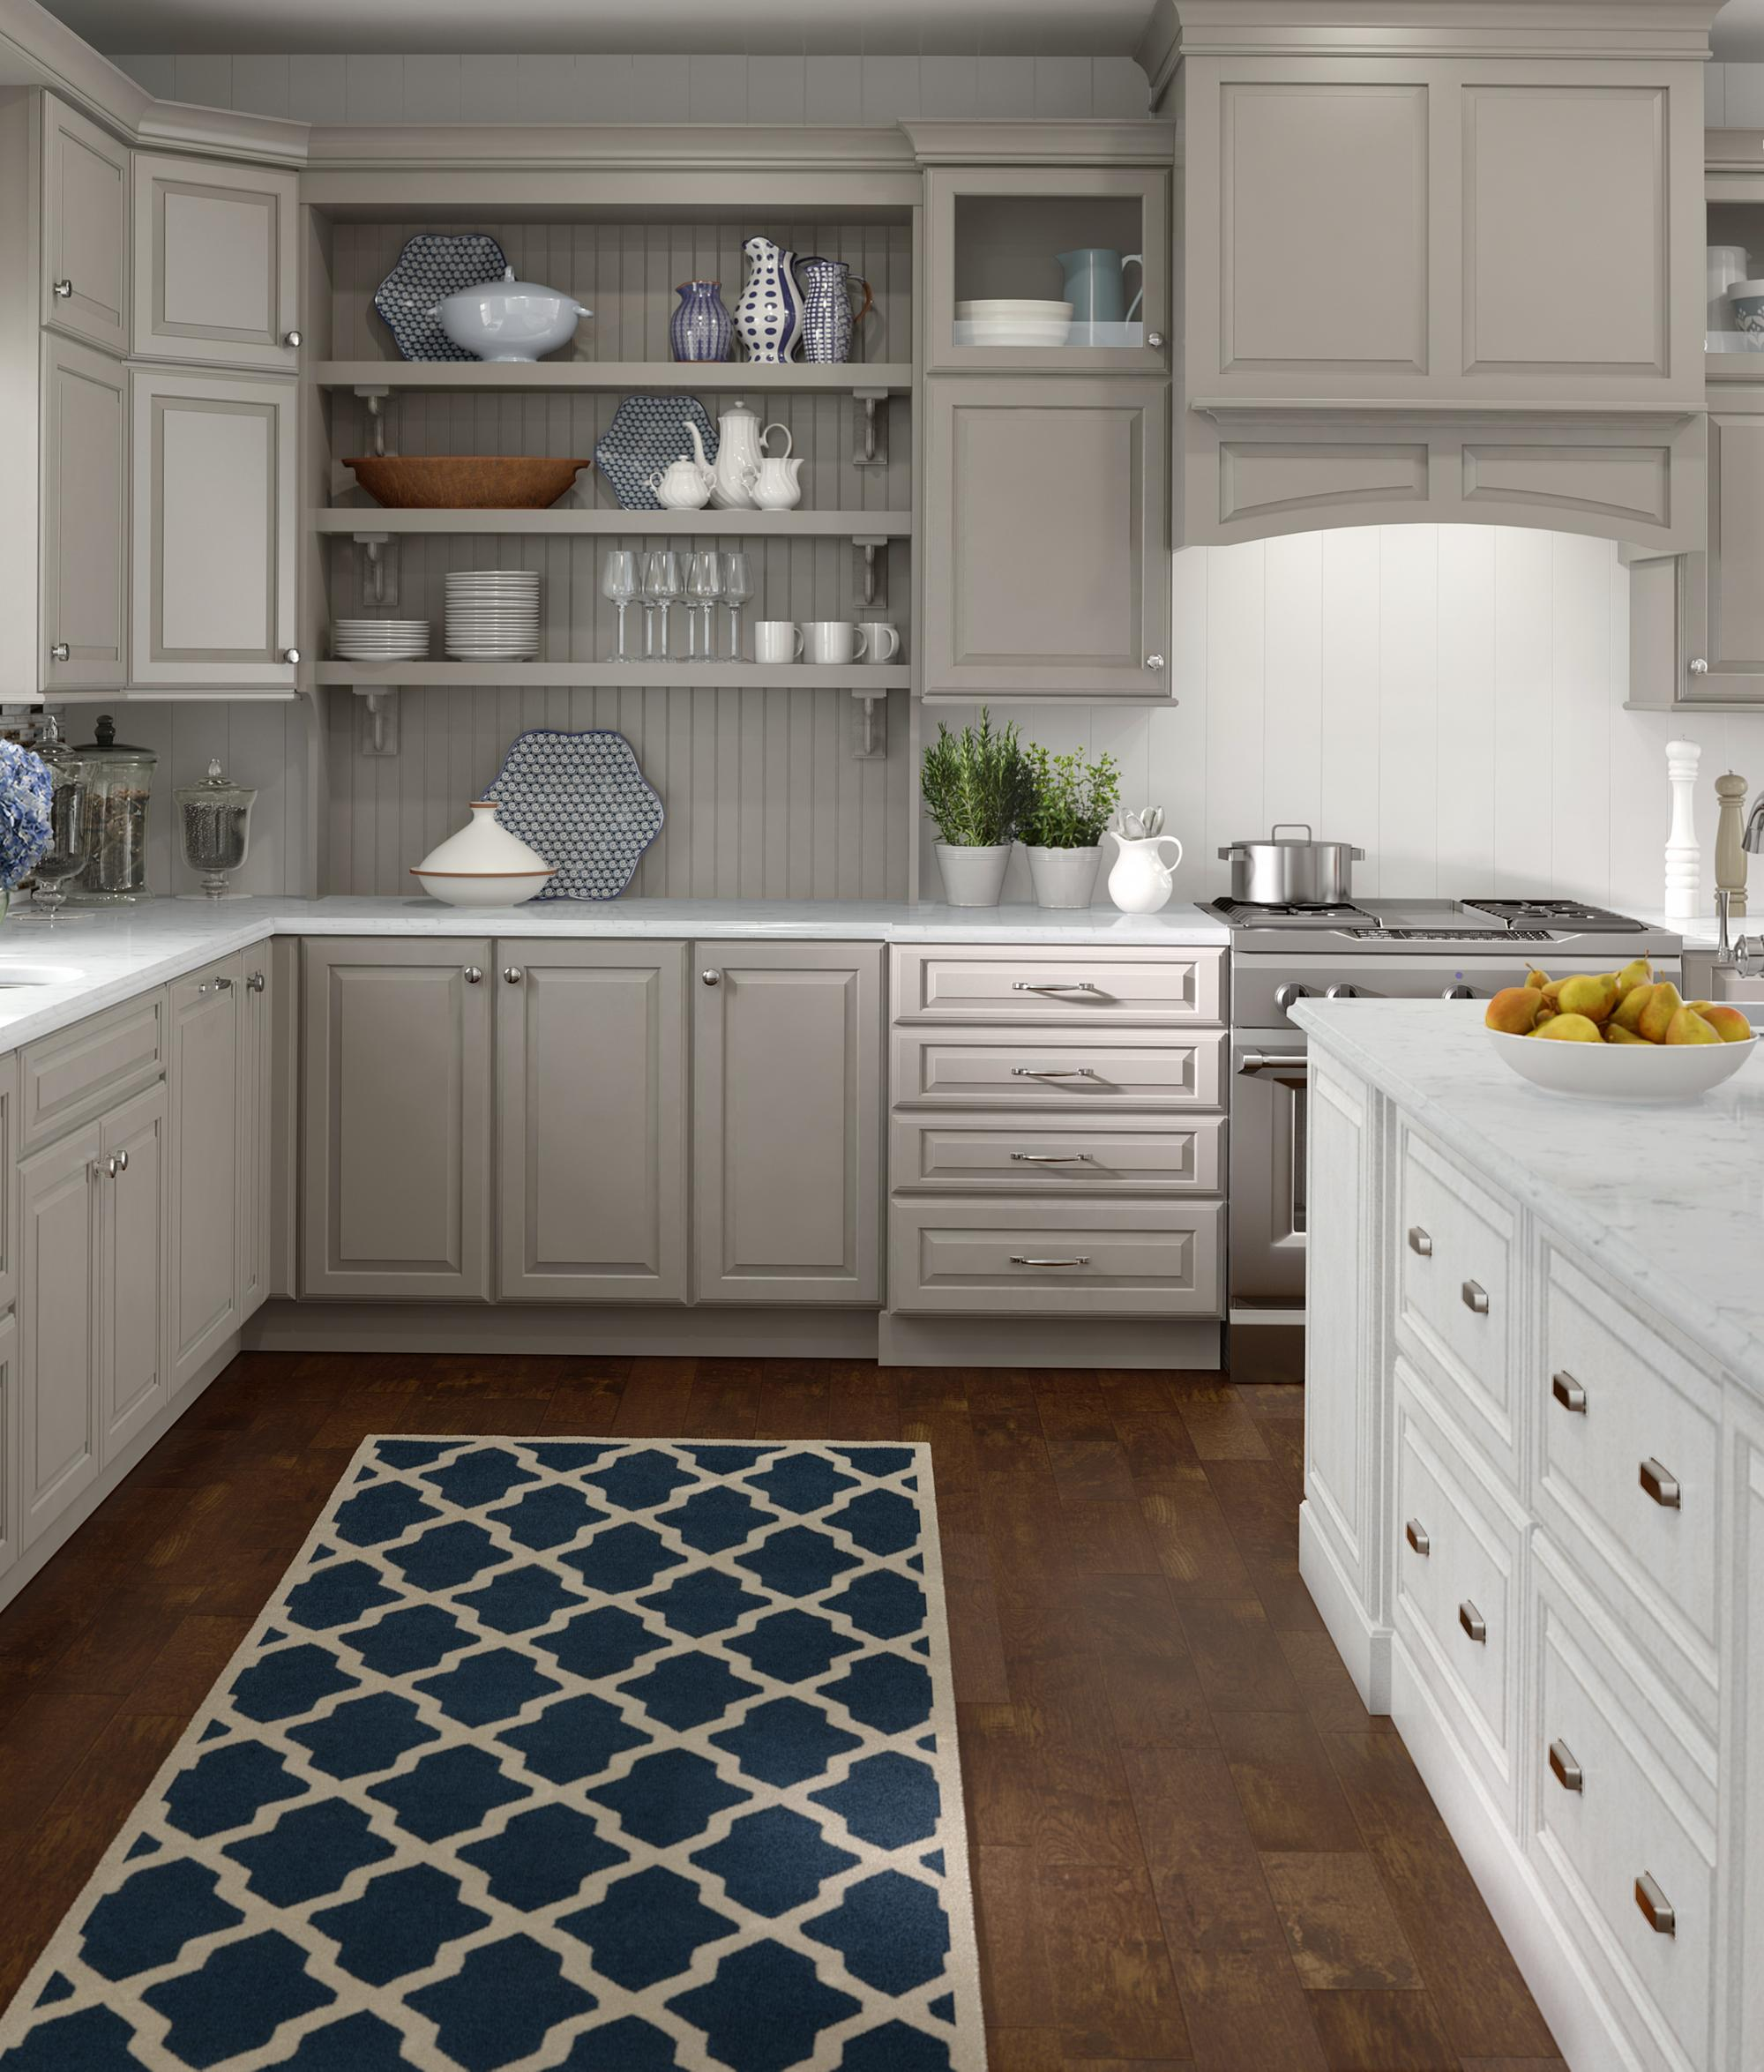 Schuler Cabinetry At Lowes Care And Cleaning For Kitchen Cabinets